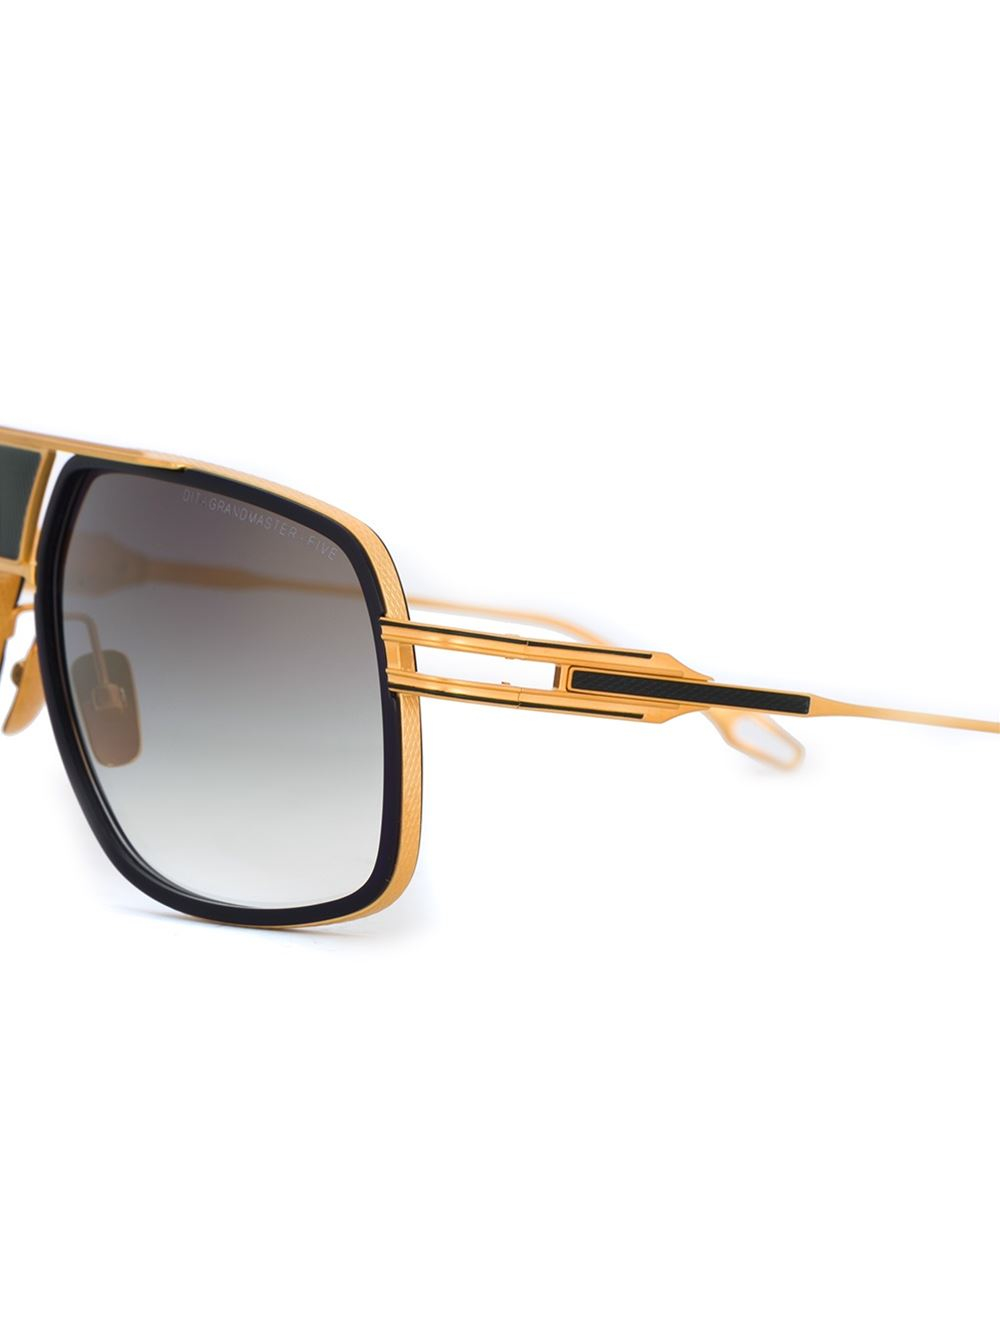 Dita eyewear 'grandmaster Five' Sunglasses in Gold (BLACK ... Dita Eyewear